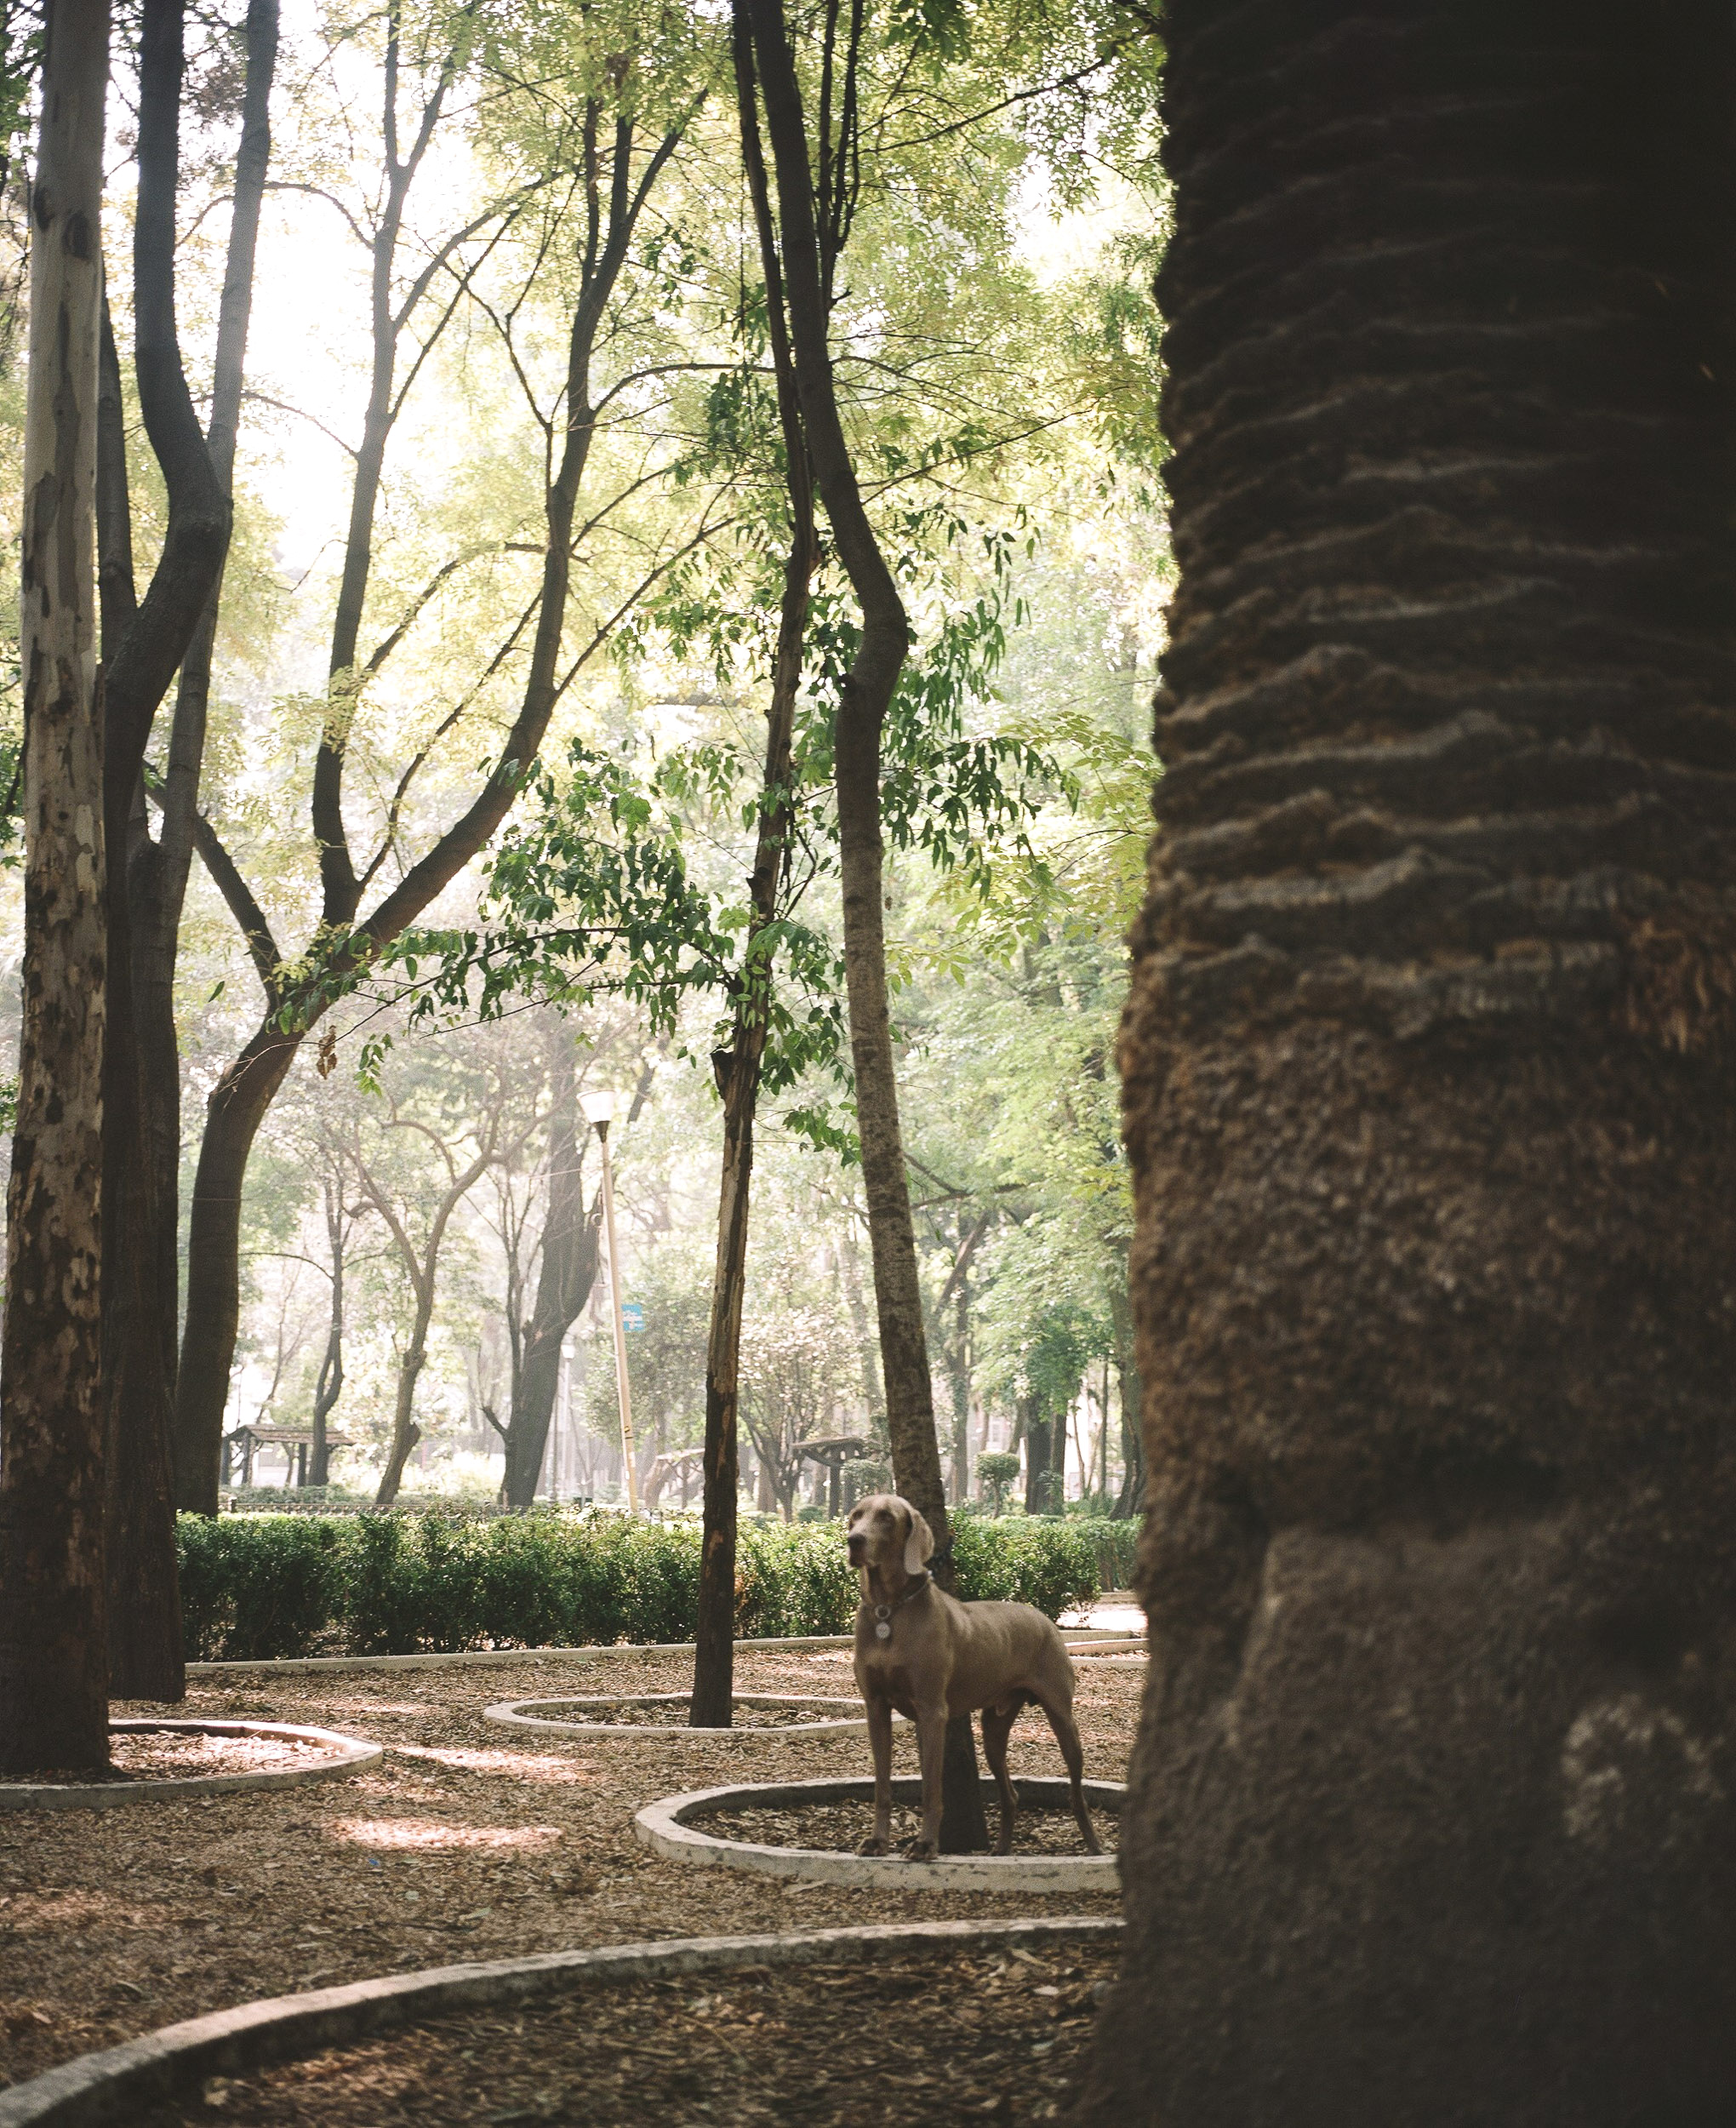 Dog in Plaza Mexico between tall trees, Mexico City